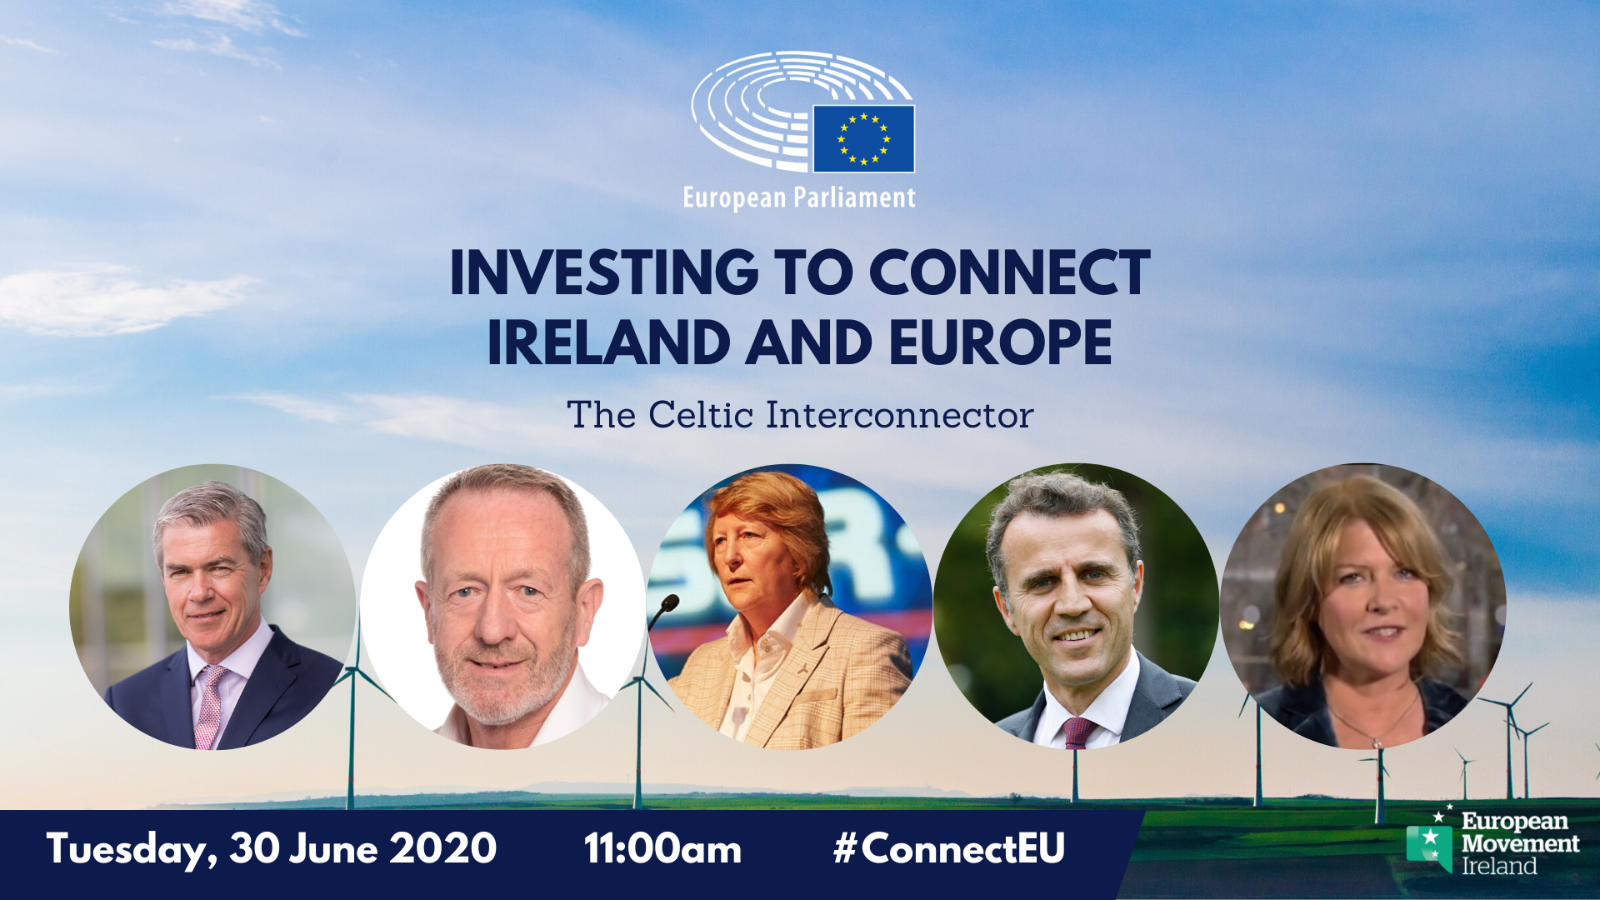 picture of 5 speakers at Celtic interconnector event